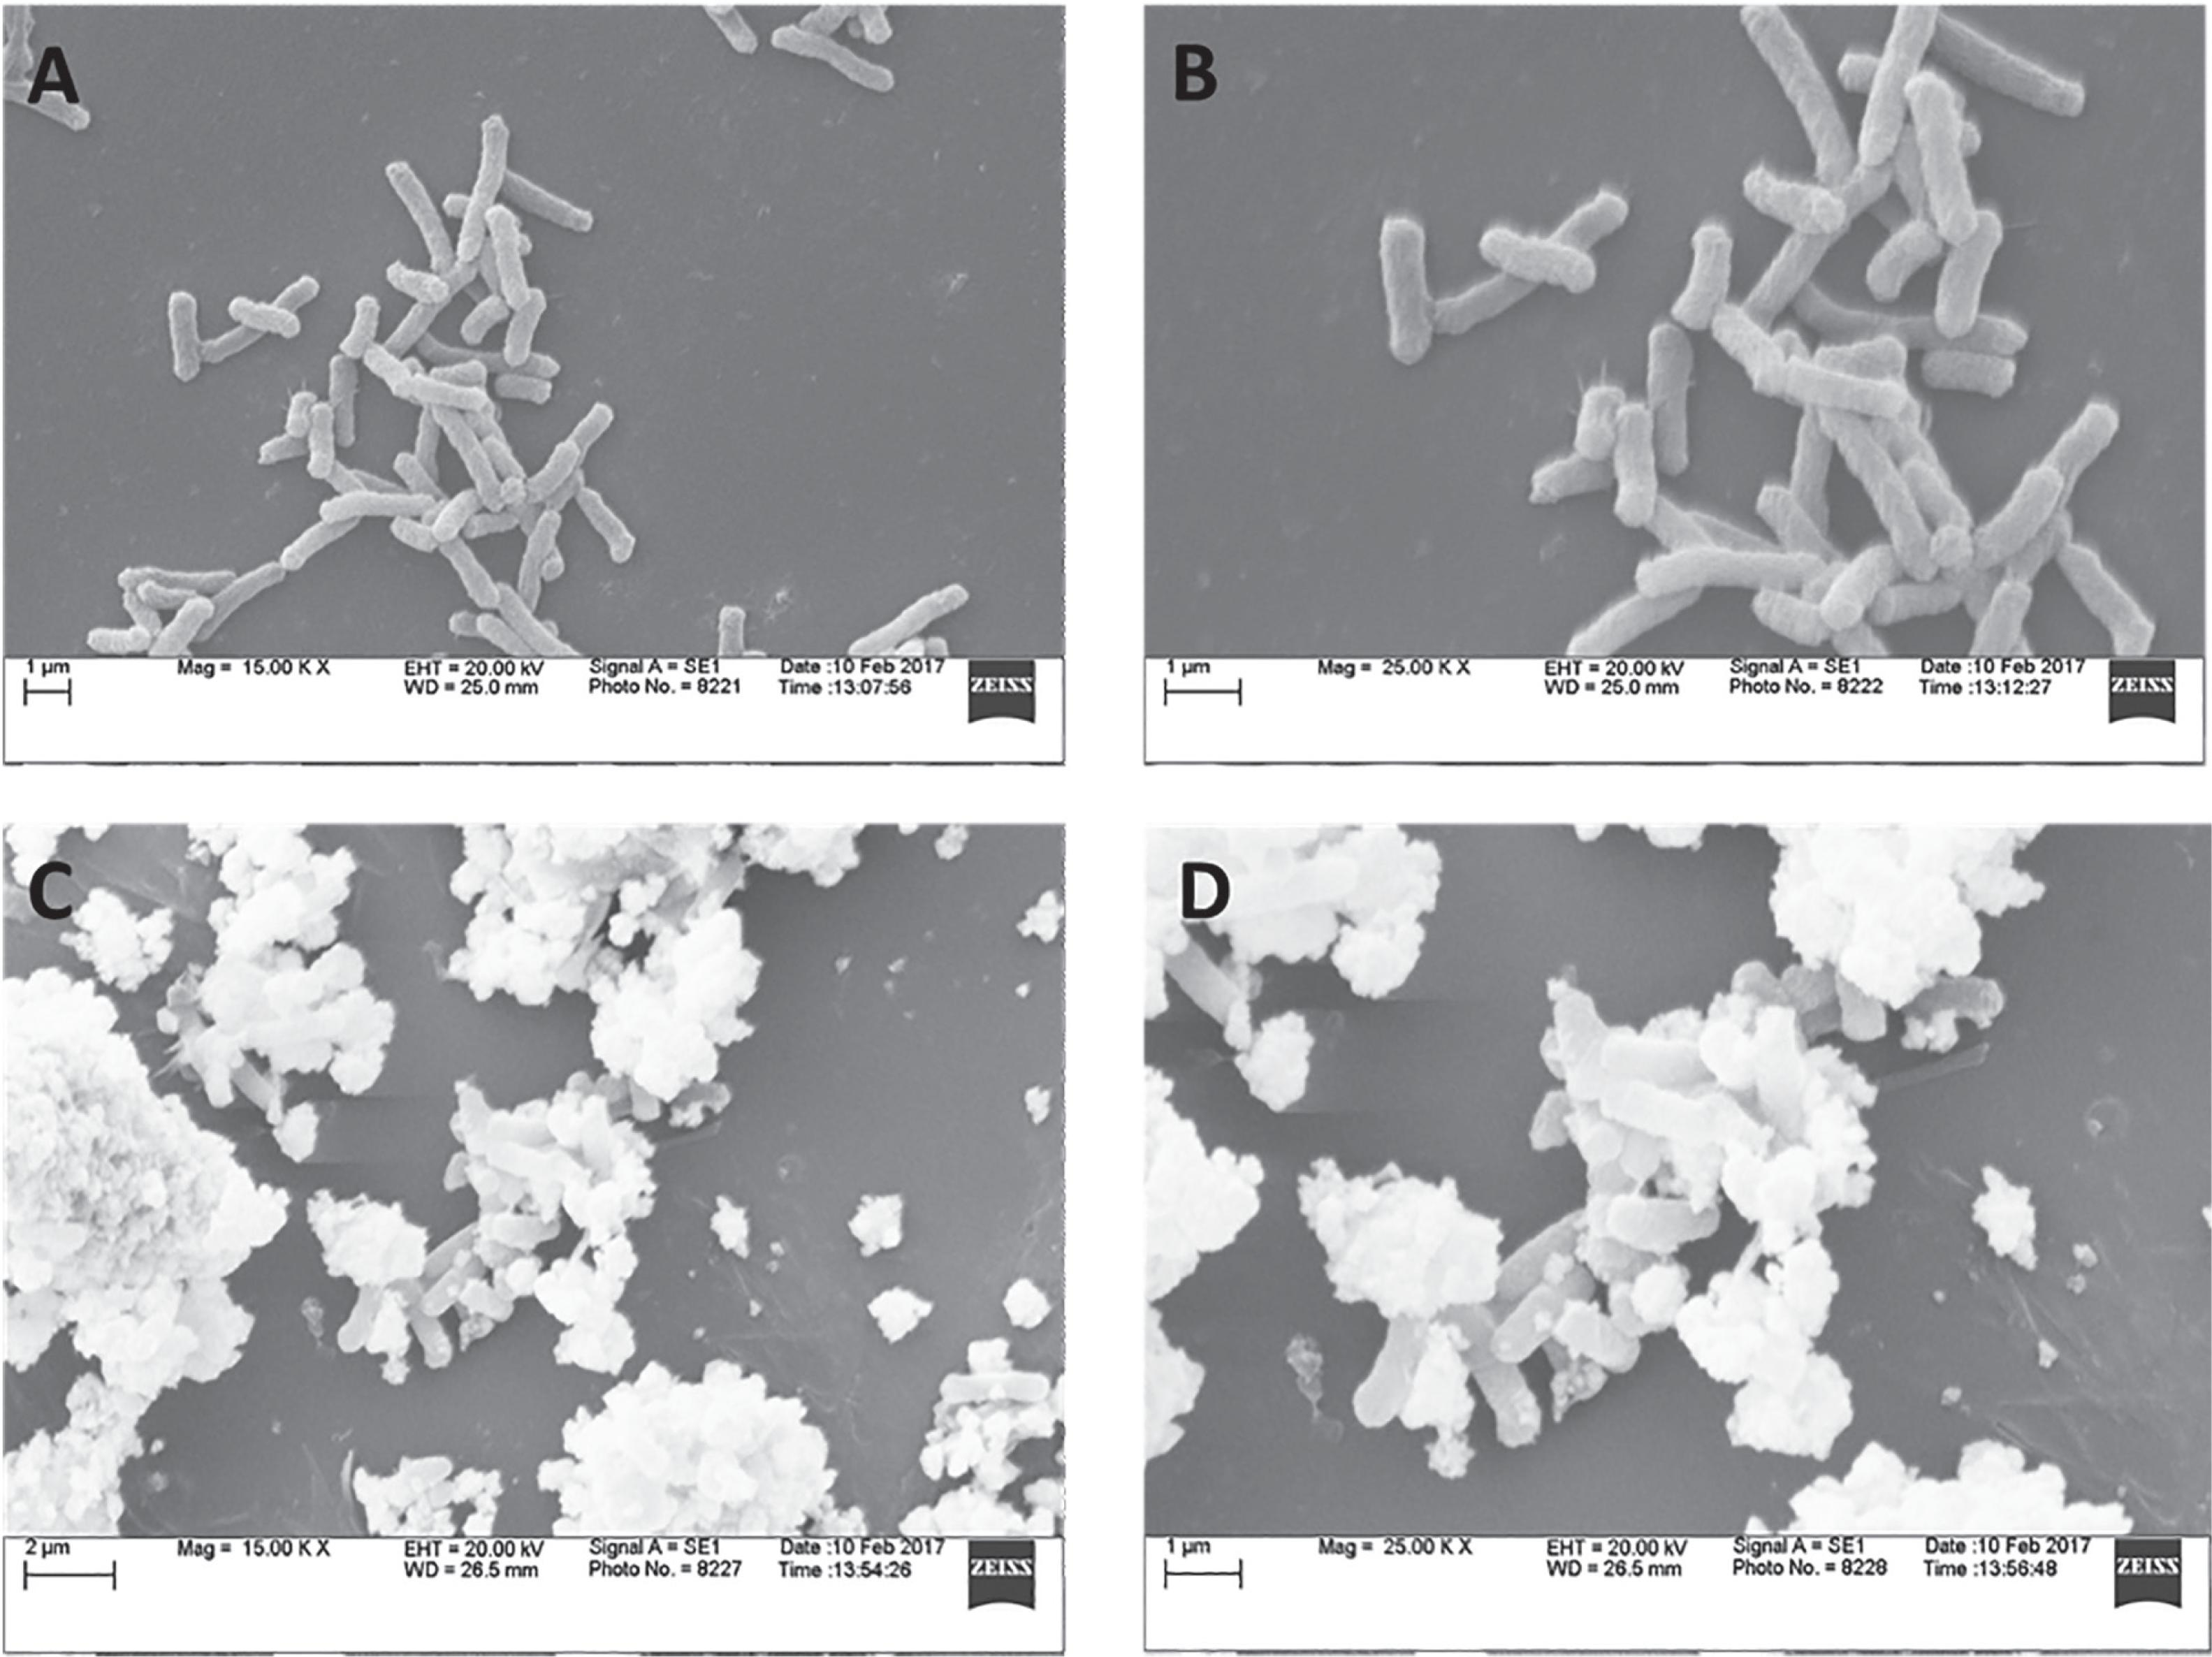 Evaluation of morphological changes in bacteria upon their interaction with AgPVP. A) Untreated bacterial cells at 15 K magnification; B) Untreated bacterial cells at 25 K magnification; C) Bacterial cells treated with AgPVP at 15 K magnification; D) Bacterial cells treated with AgPVP at 25 K magnification.